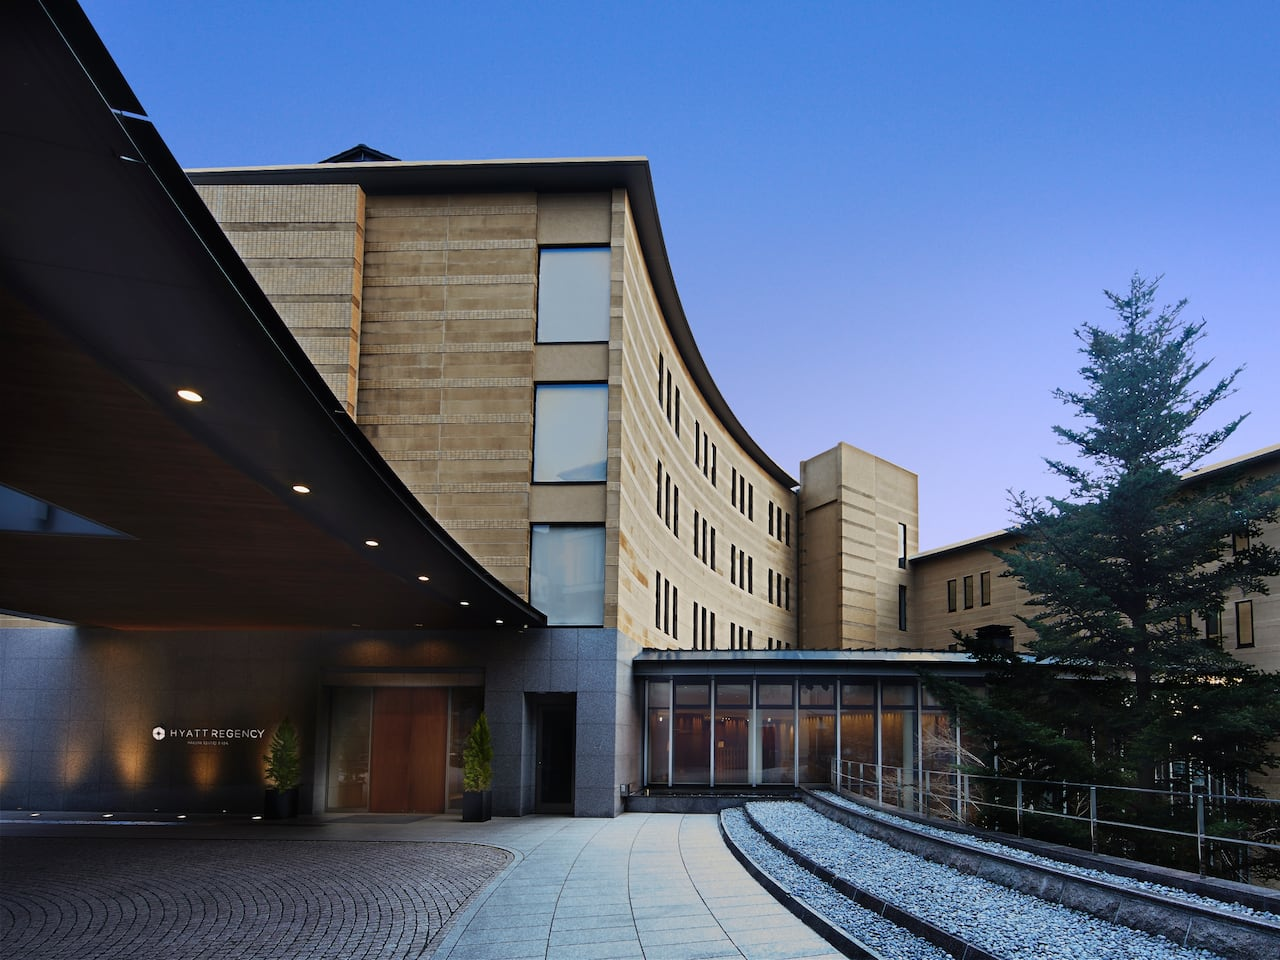 Hyatt Regency Hakone Resort & Spa| Hotel Exterior